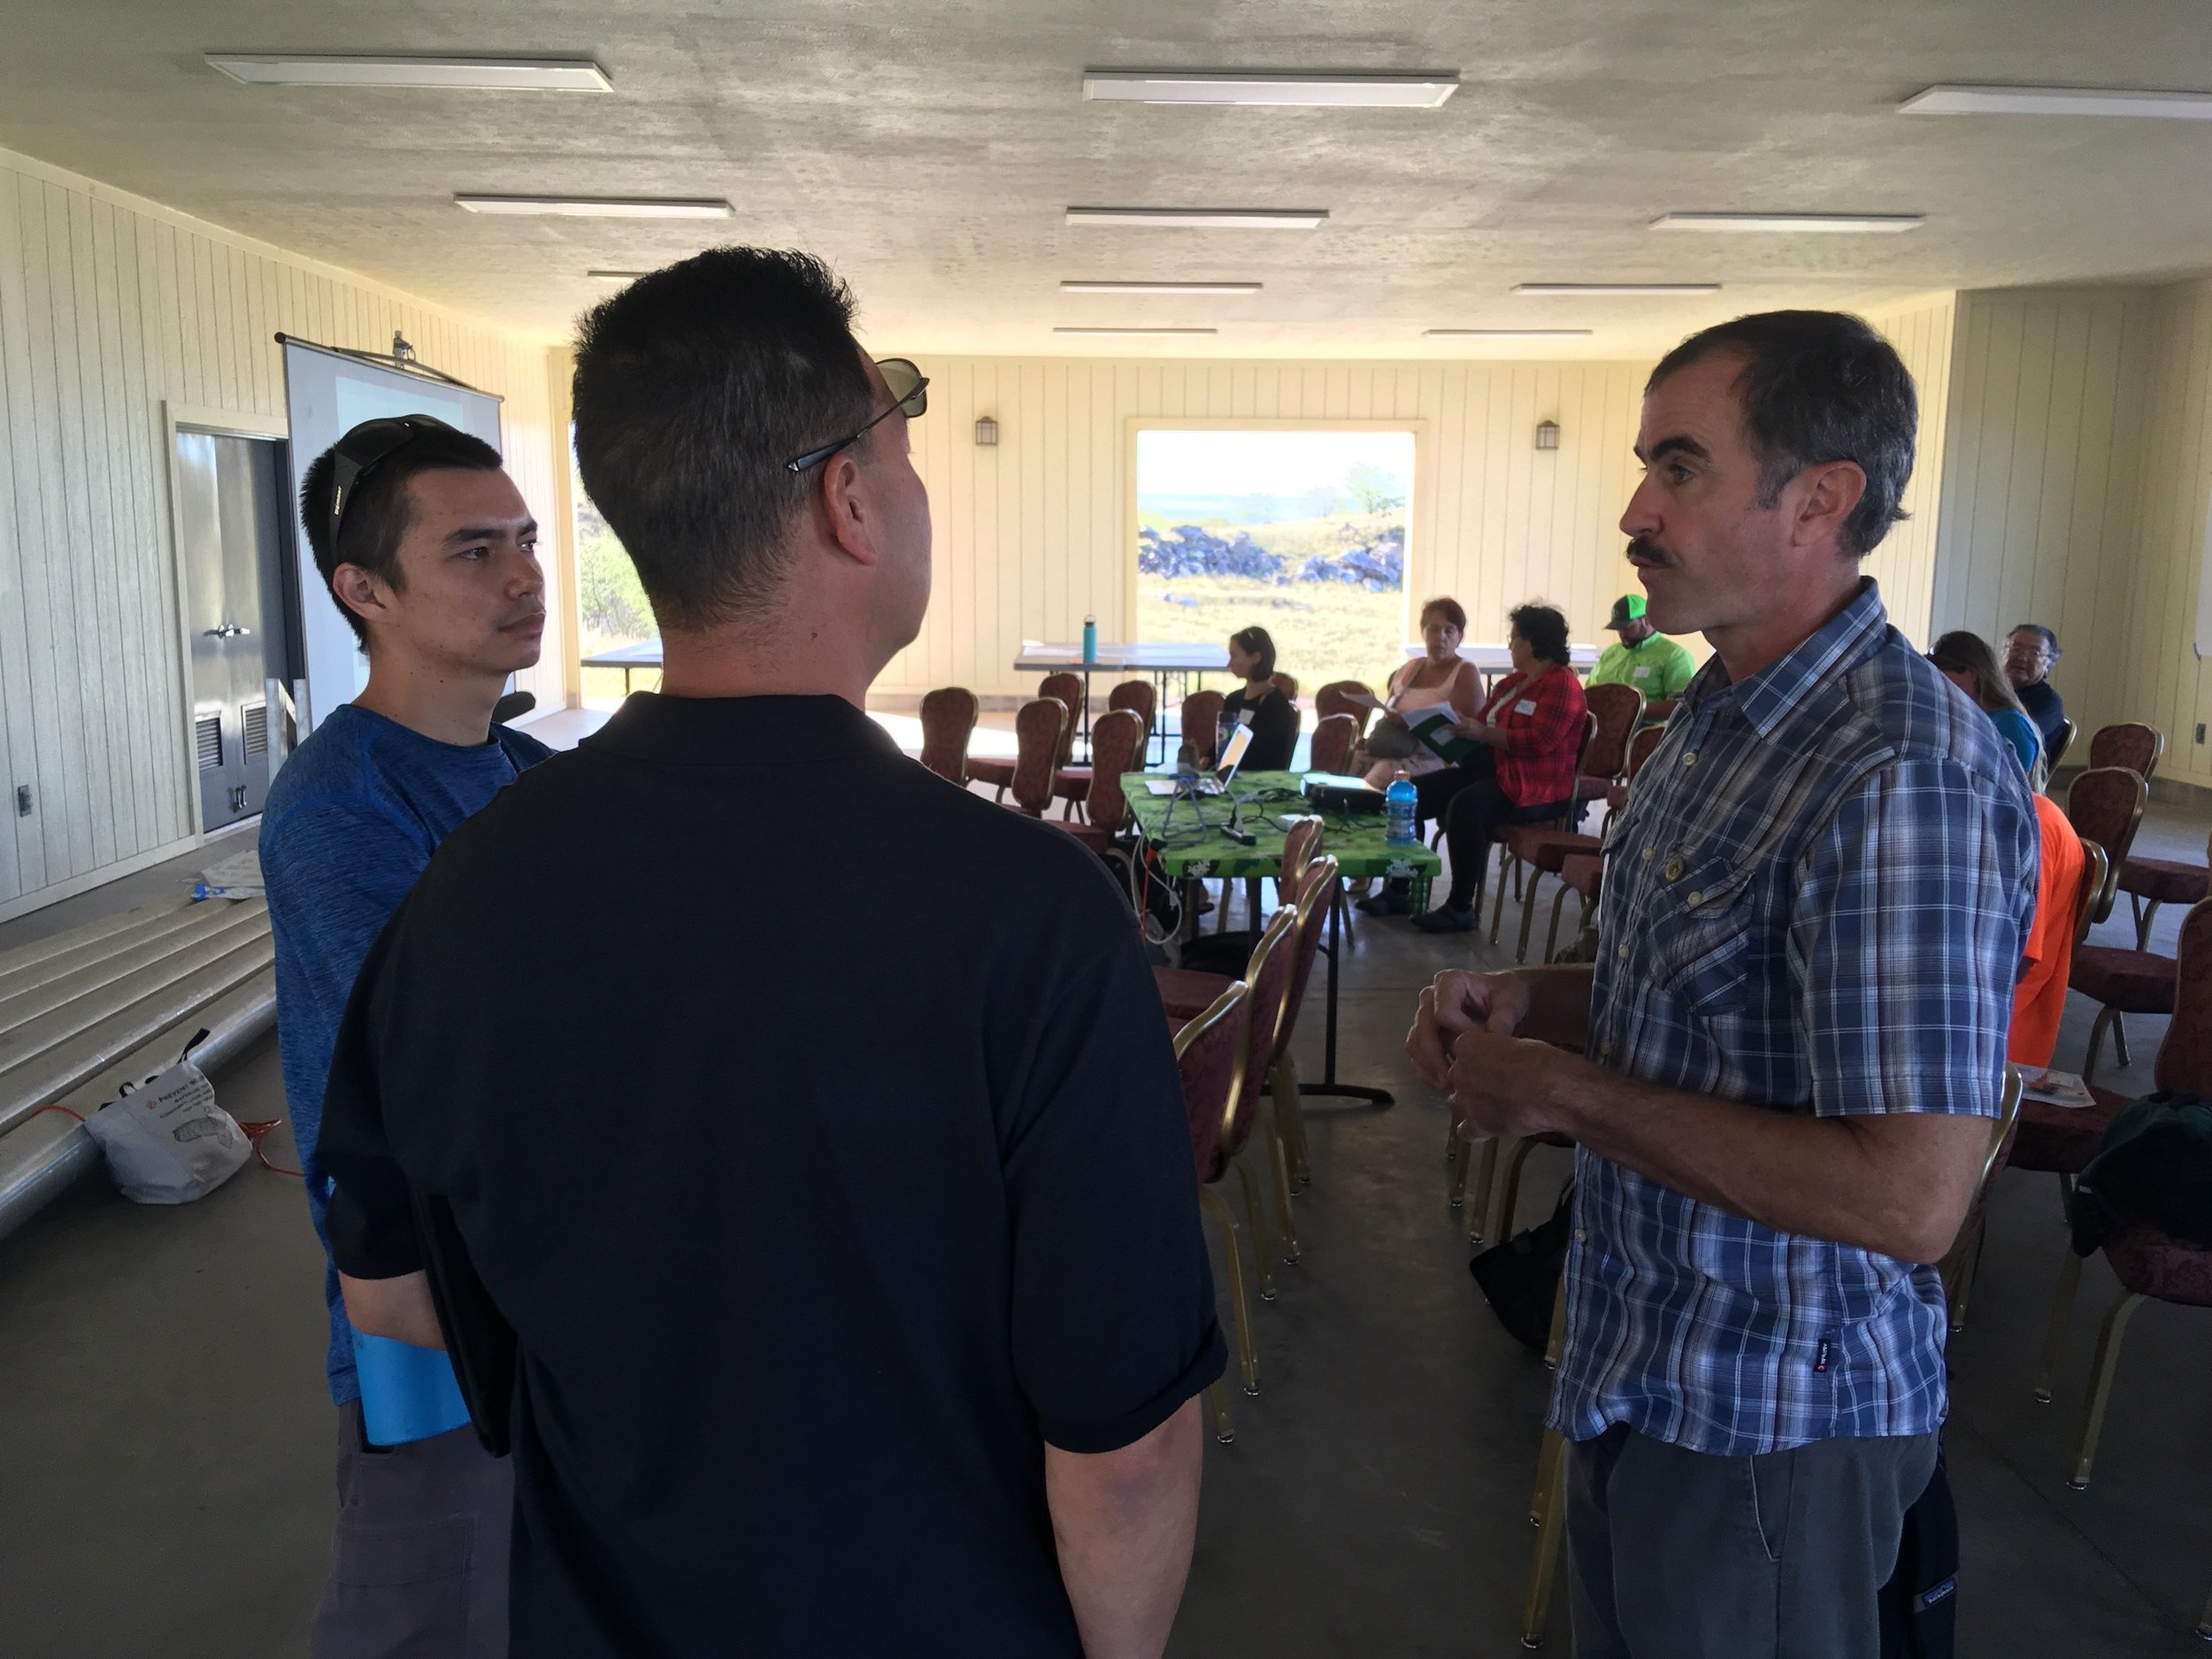 Hawaii Island Kailapa Vegetative Fuels Management Collaborative Action Planning Workshop_2_26_2019_5.jpg